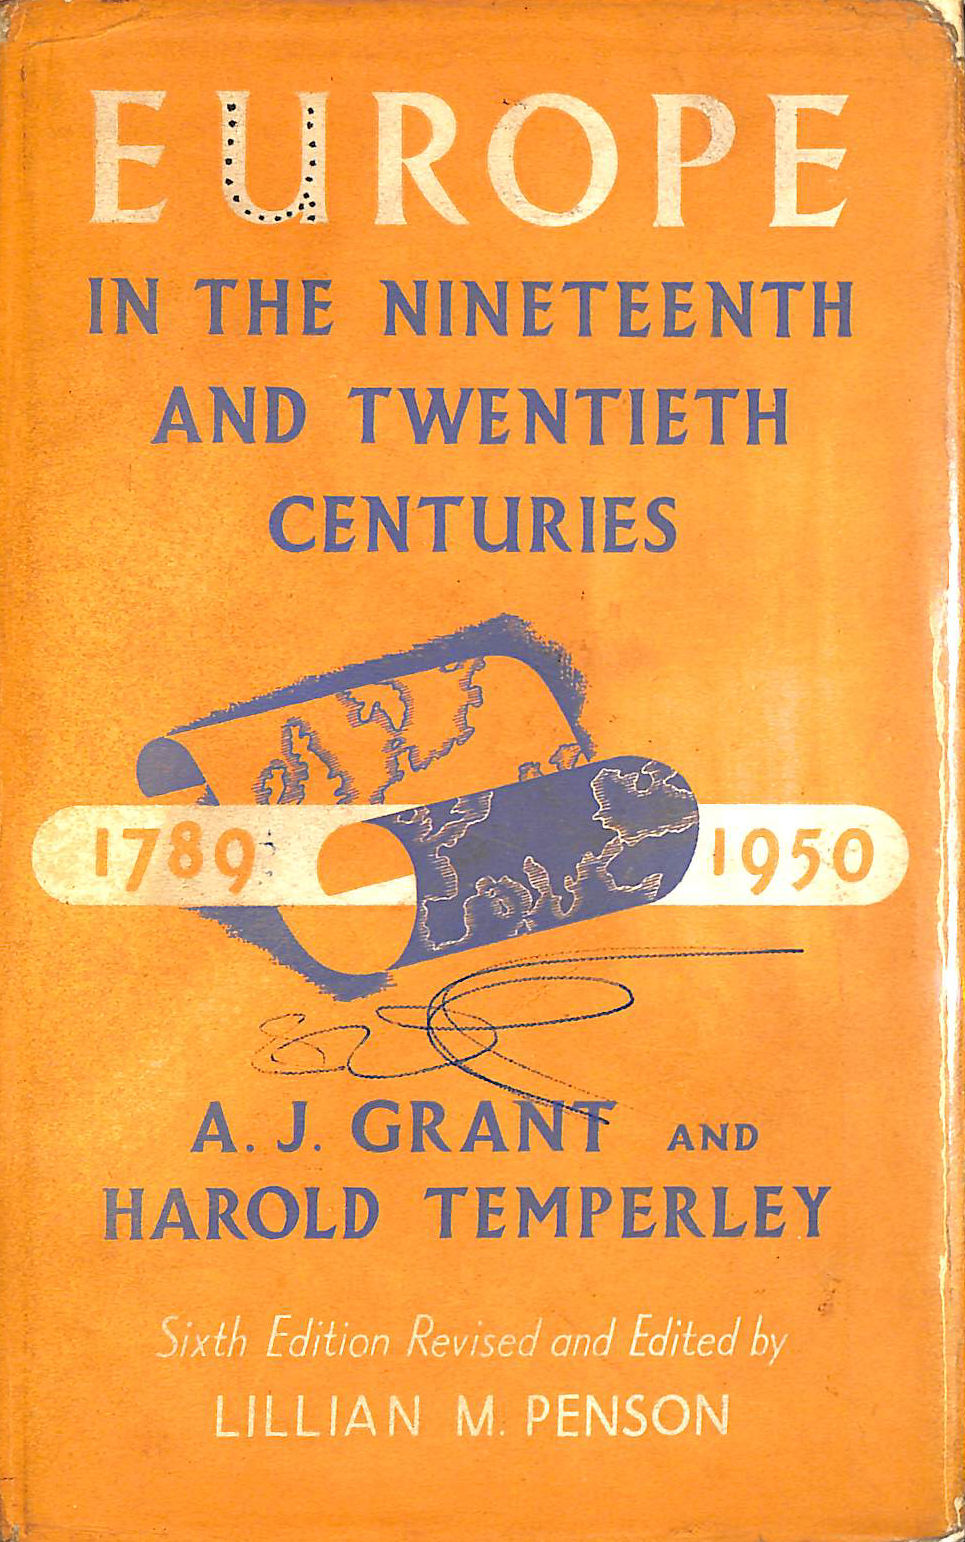 Image for Europe In The Nineteenth And Twentieth Centuries (1789-1950).